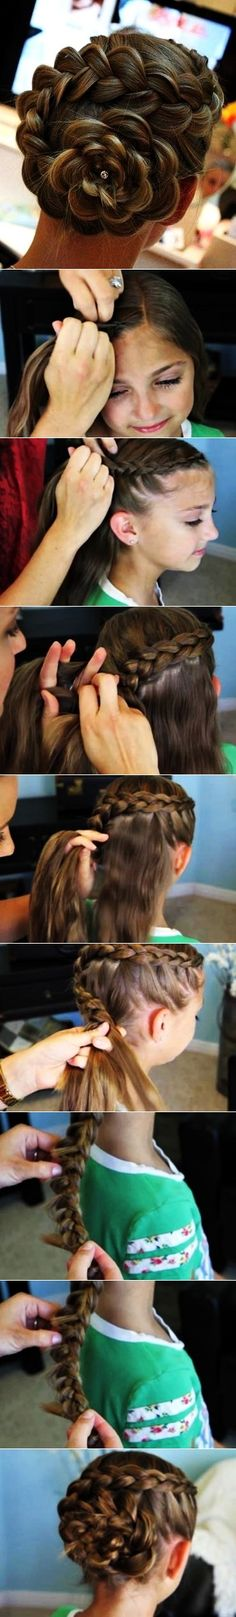 DIY Flower Hair beauty long hair updo braids how to diy hair hairstyles tutorials hair tutorials easy hairstyles The post DIY Flower Hair beauty long hair updo braids how to diy hair hairstyles tutorial appeared first on Hair Styles. Hairstyles Haircuts, Pretty Hairstyles, Braided Hairstyles, Wedding Hairstyles, Latest Hairstyles, Flower Hairstyles, Braided Updo, Lehenga Hairstyles, Natural Hairstyles